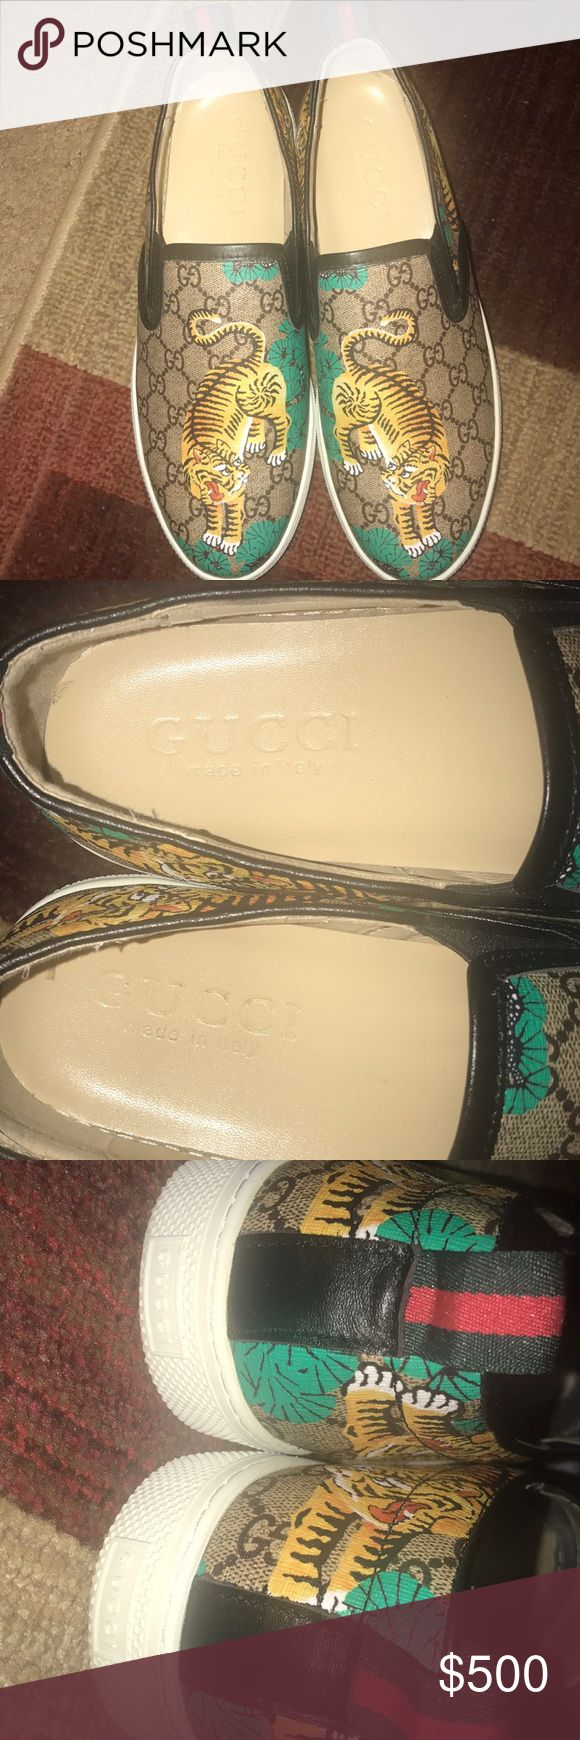 gucci dublin slip ons good condition Gucci Shoes Loafers & Slip-Ons